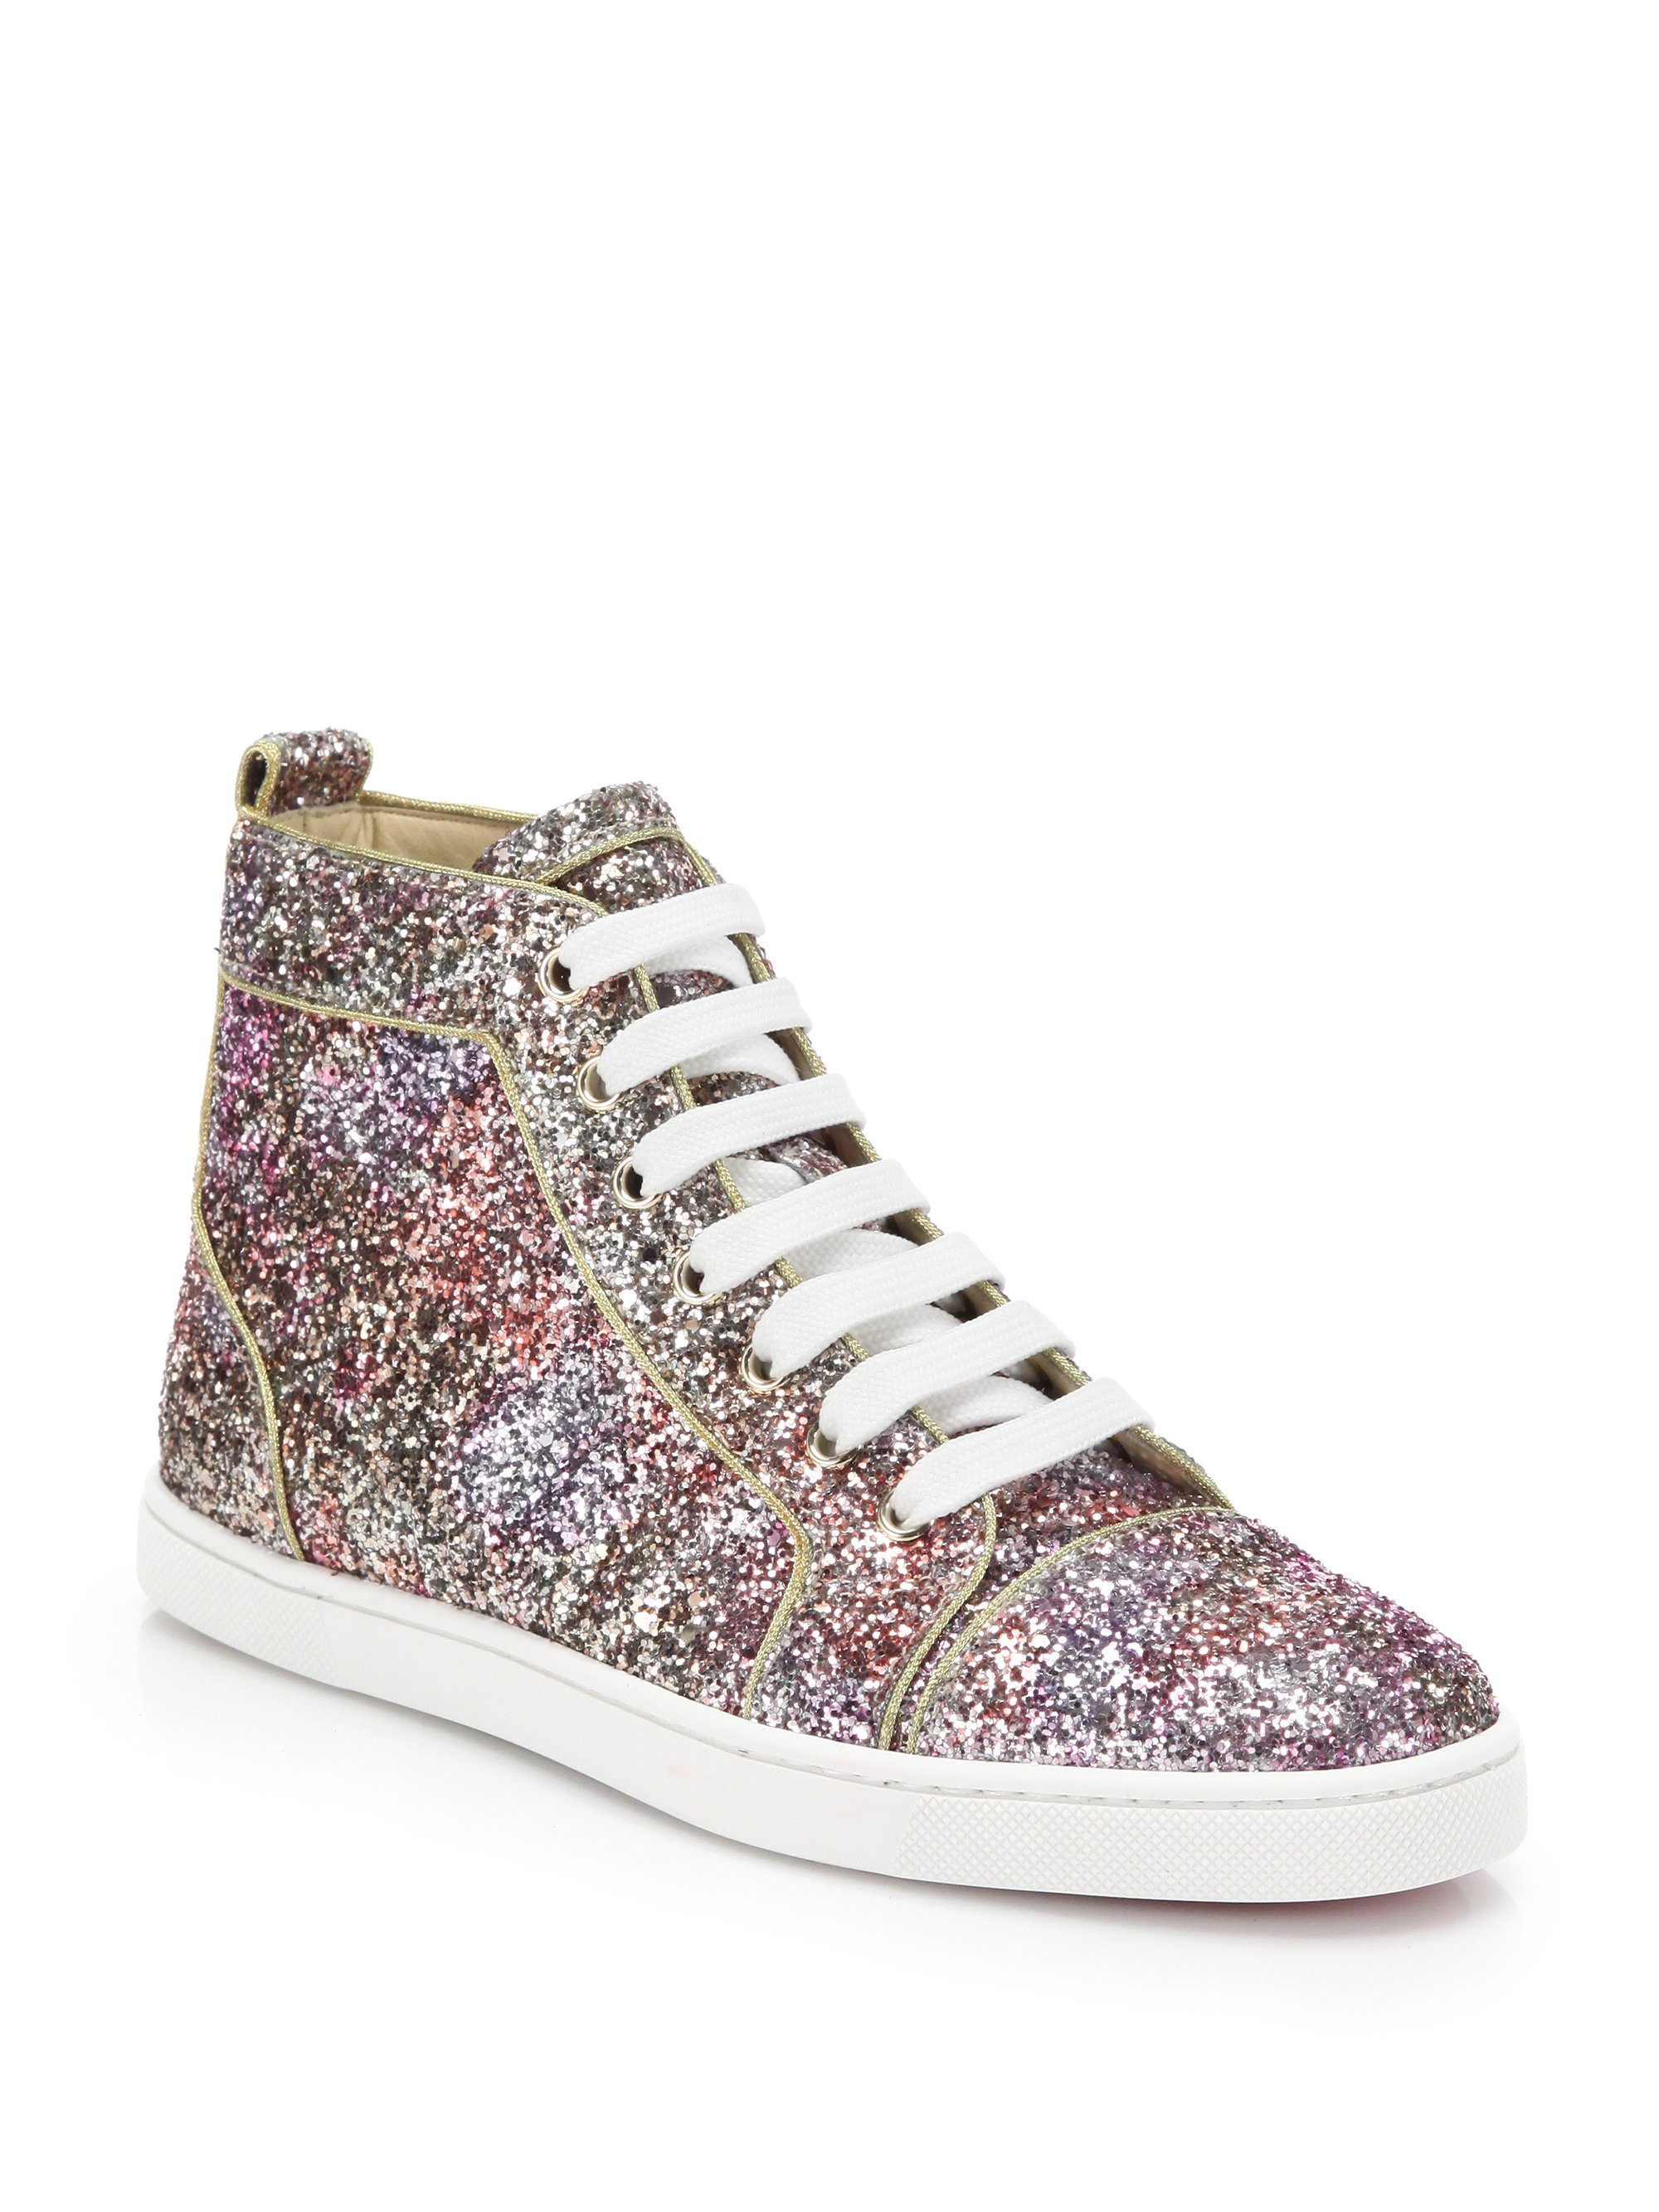 christian louboutin studded patent leather skate sneakers